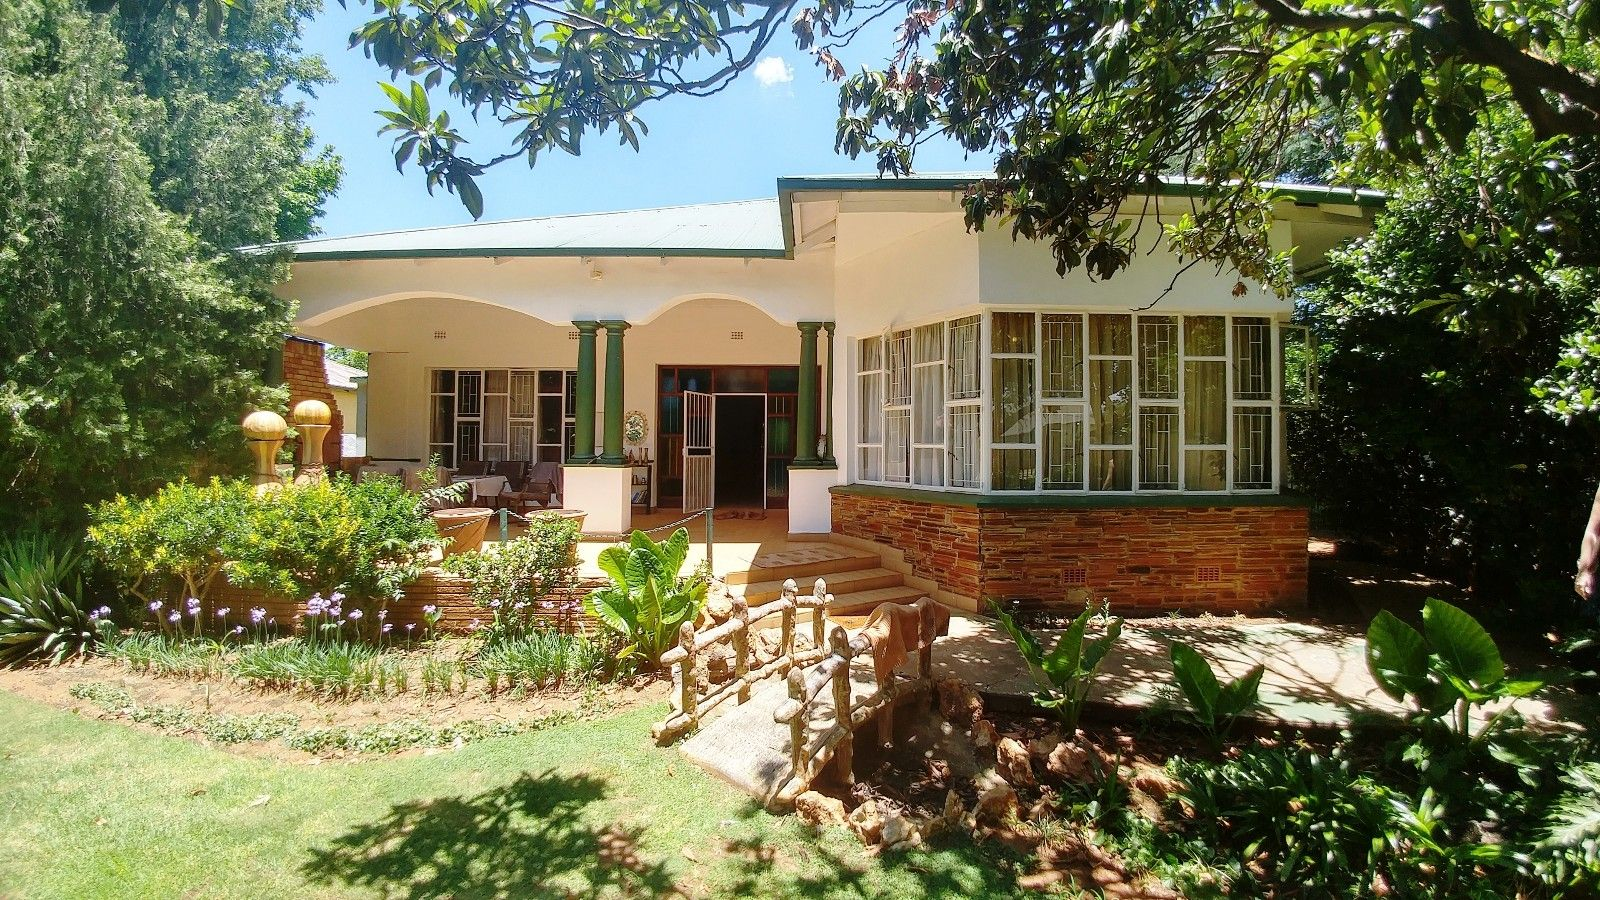 Potchefstroom Central for sale property. Ref No: 13460775. Picture no 1